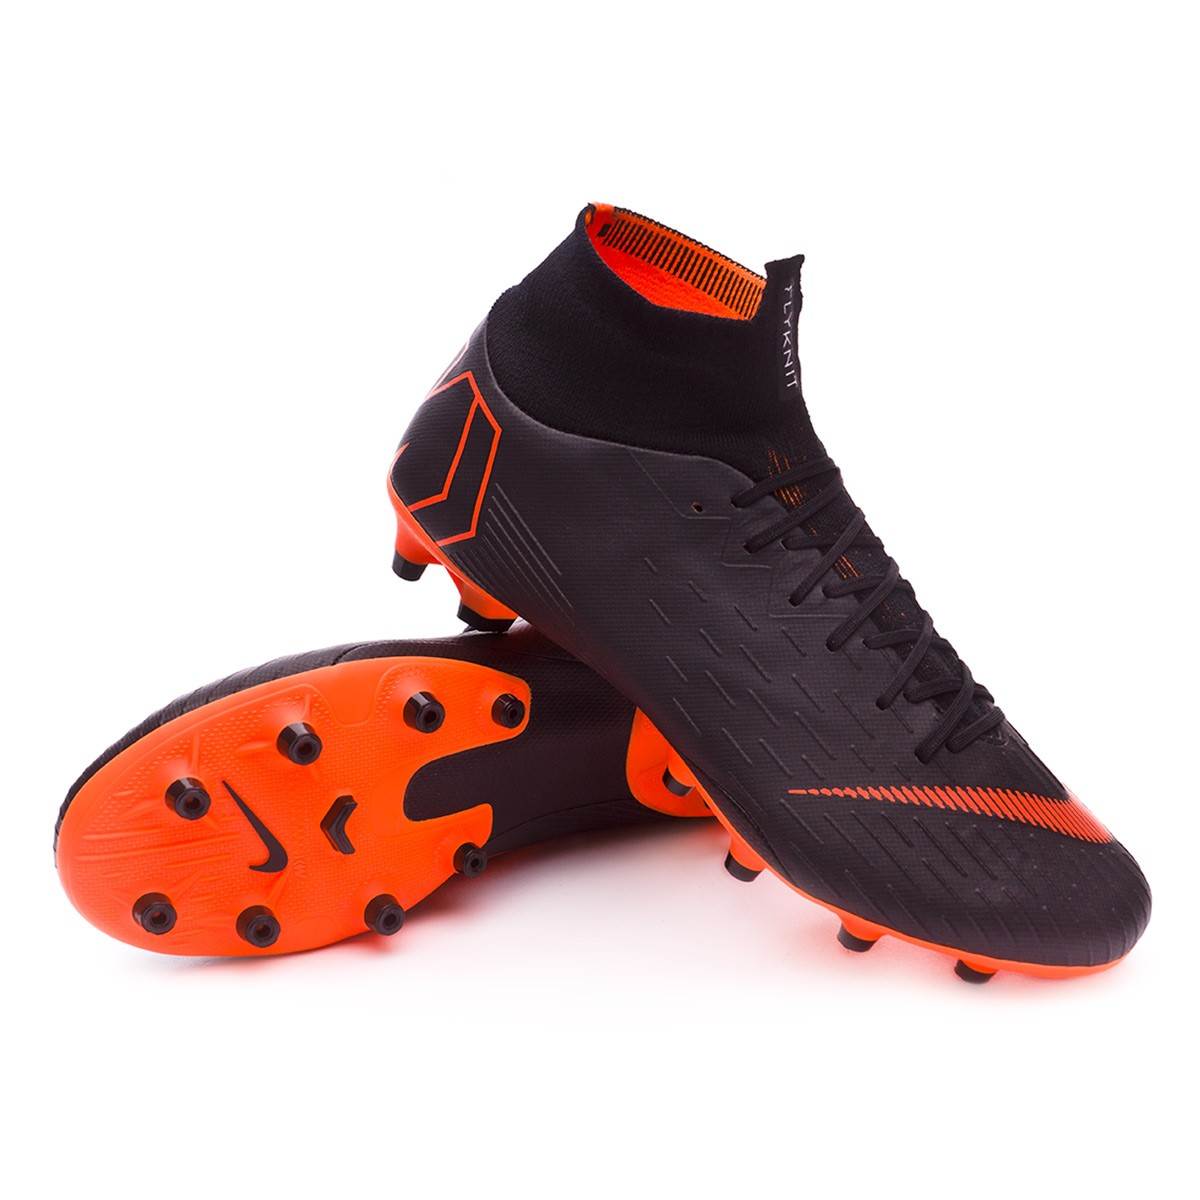 954866dcd1b Football Boots Nike Mercurial Superfly VI Pro AG-Pro Black-Total ...